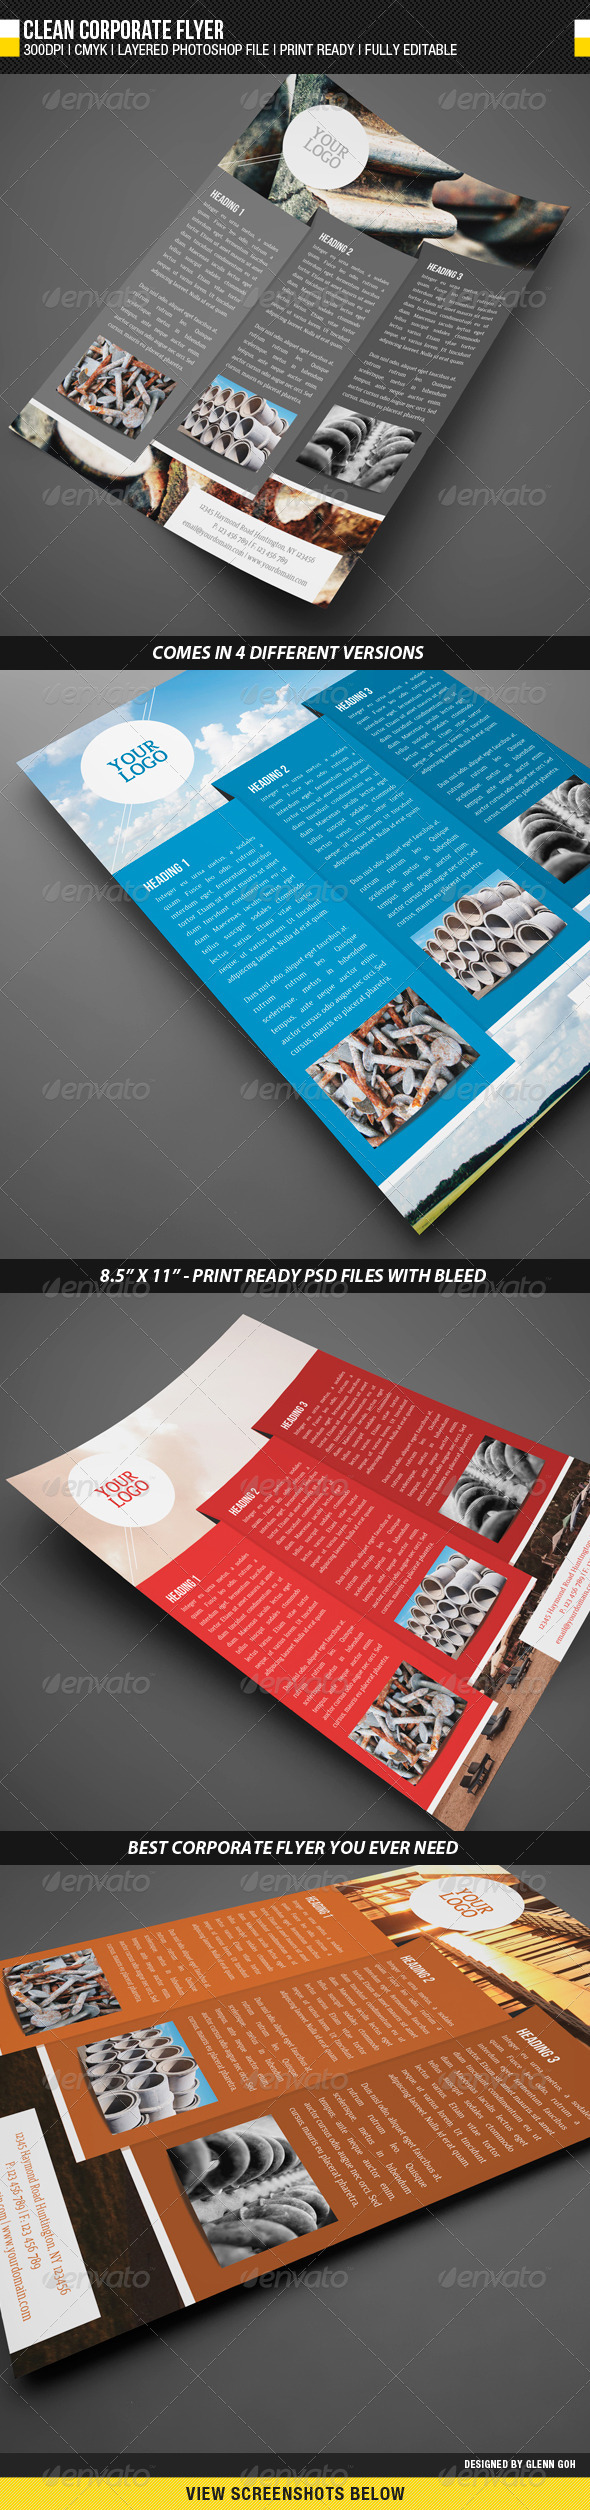 GraphicRiver Clean Corporate Flyer 1684503